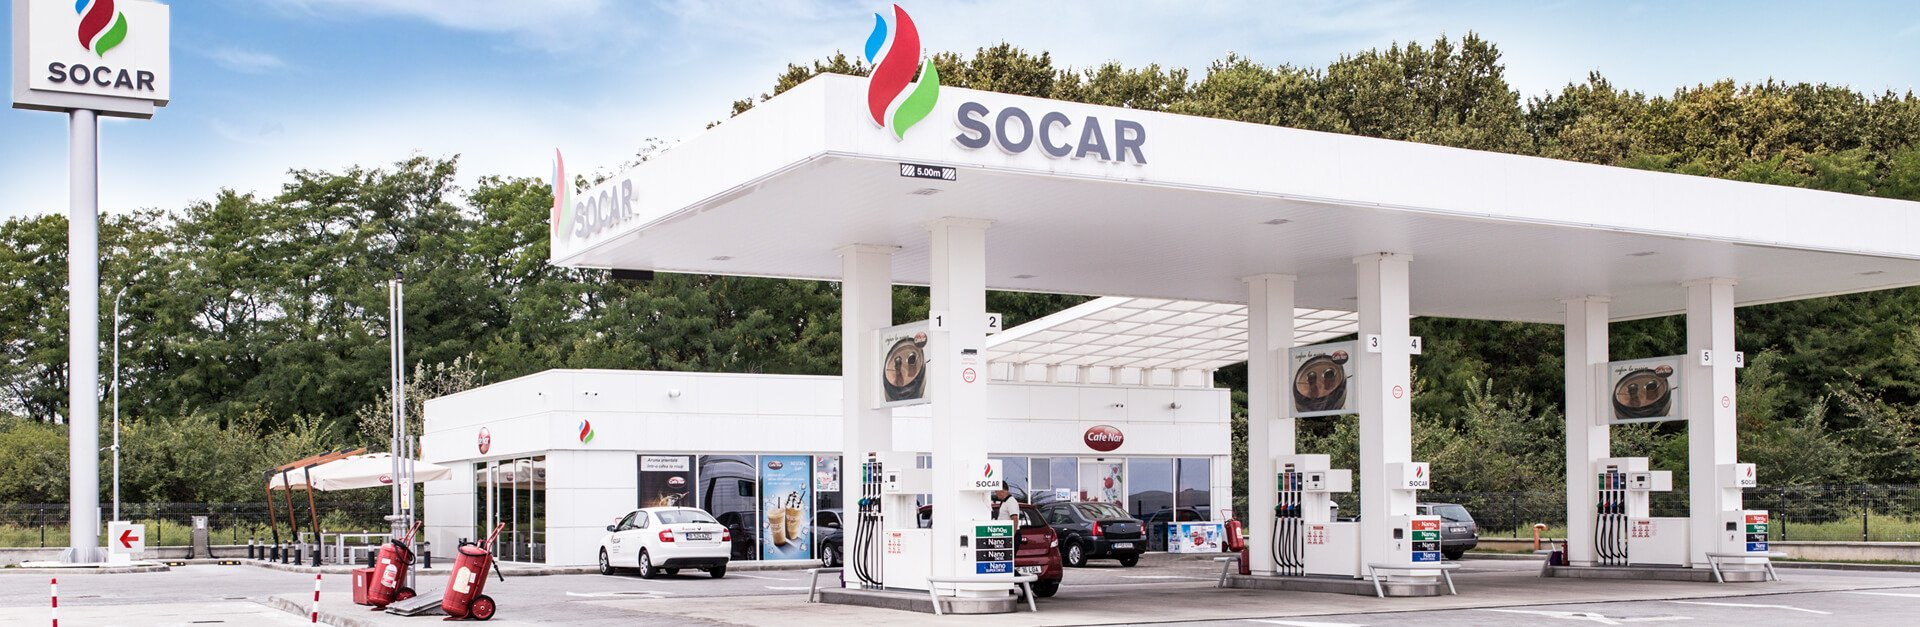 About SOCAR